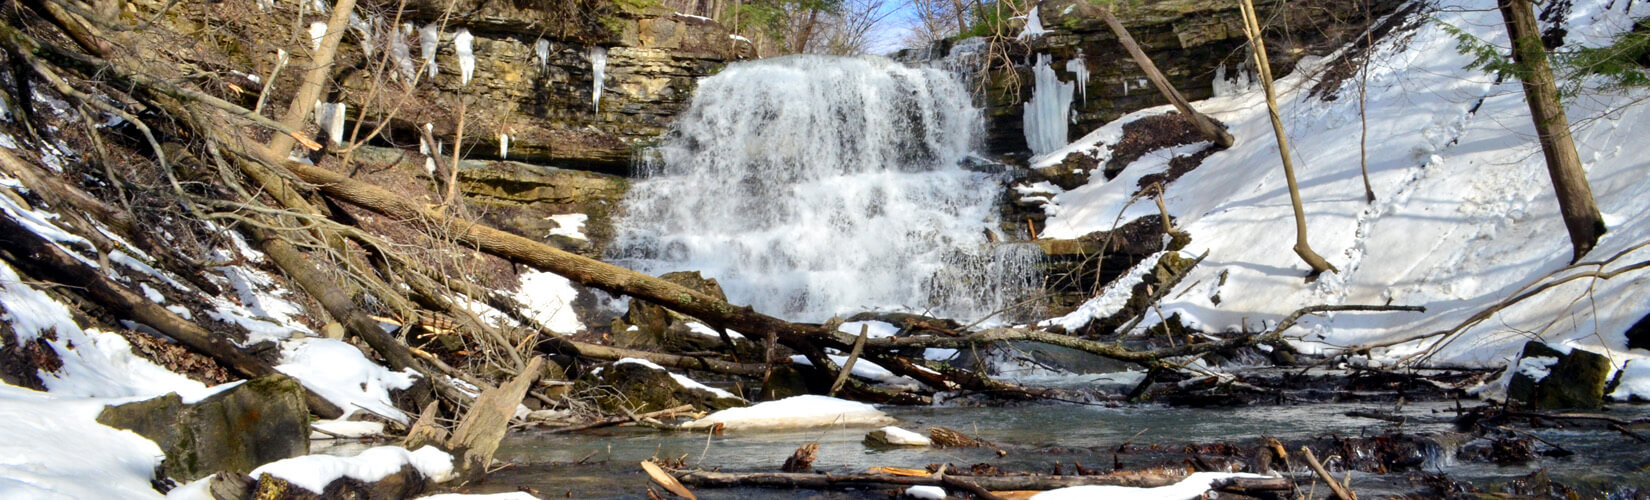 10+ Waterfalls in Niagara Region & How to See Them in One Day :: I've Been Bit! Travel Blog